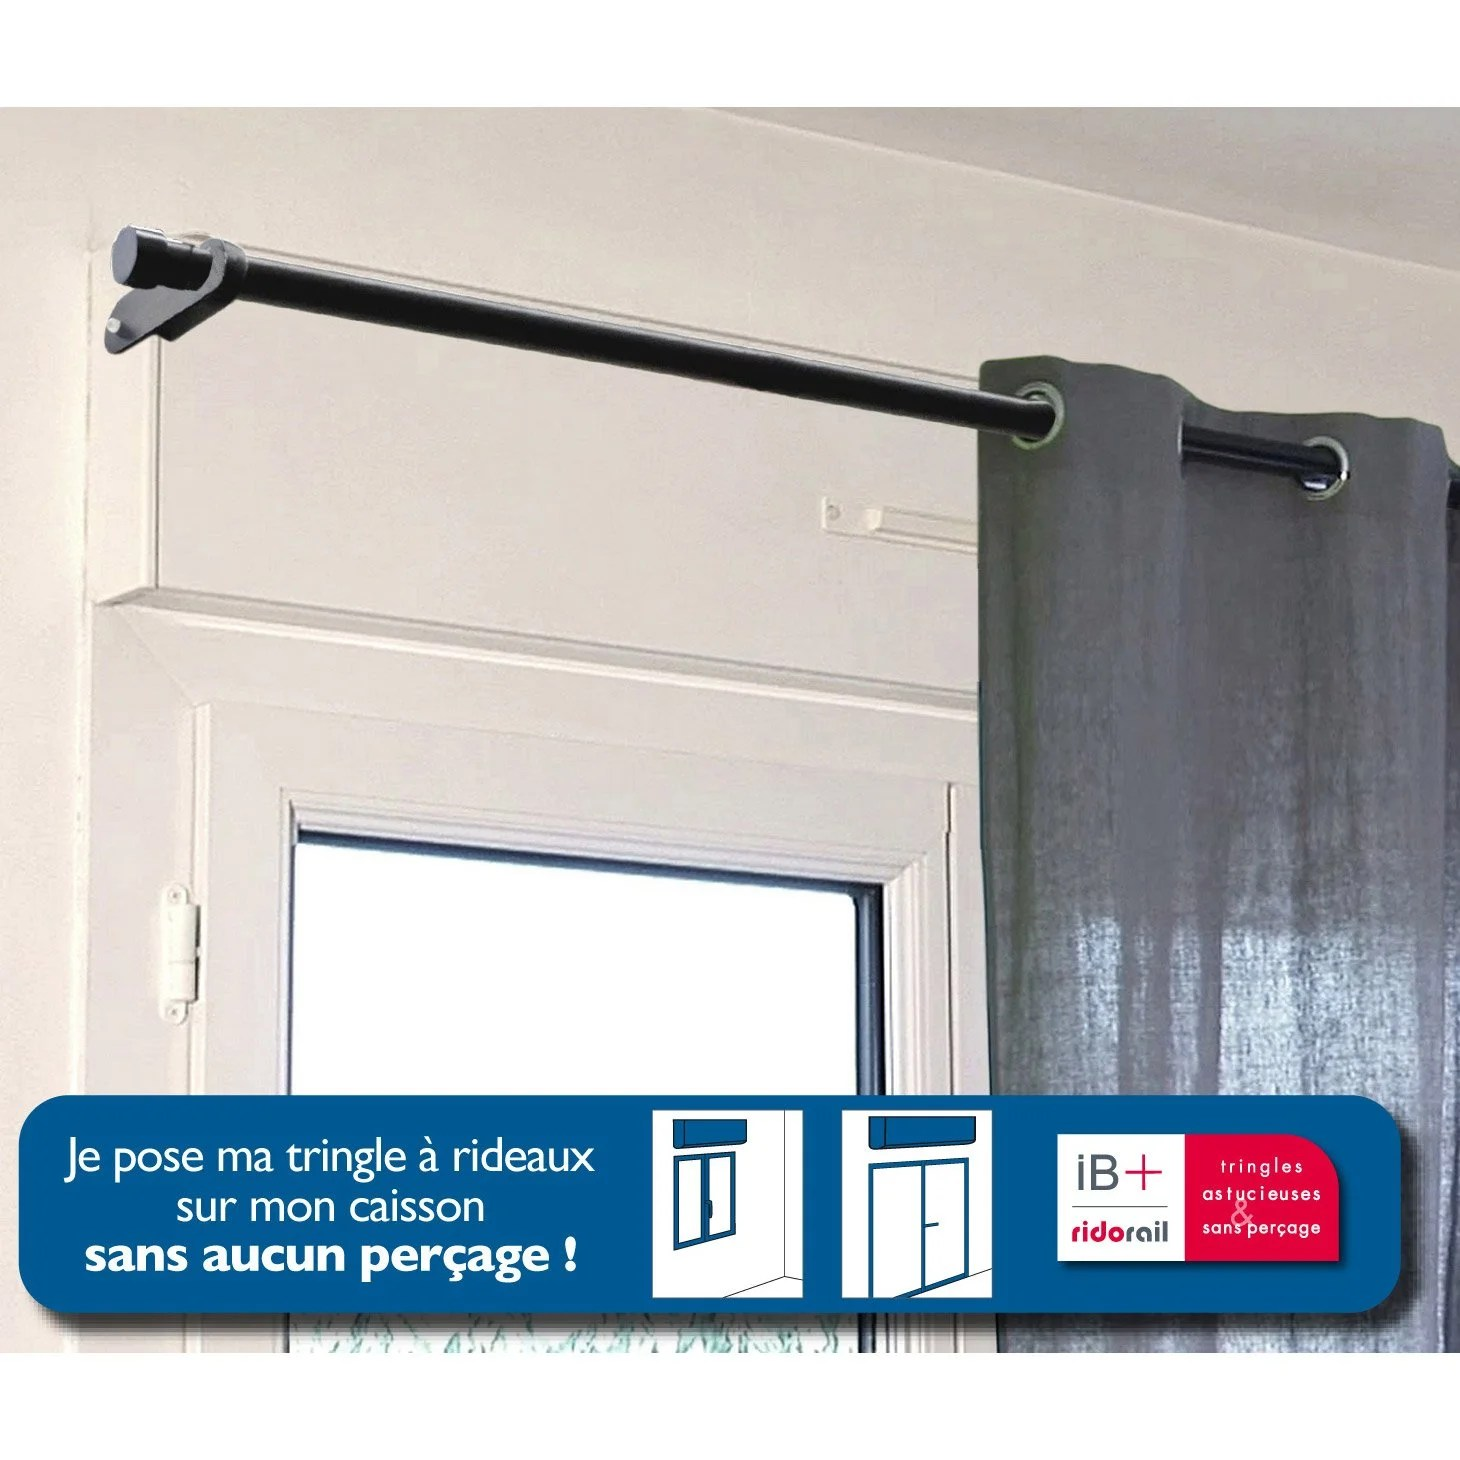 Fenetre Pvc Oscillo Battant Leroy Merlin Support Sans Perçage Tringle à Rideau Ib+, 25 Mm Noir Mat